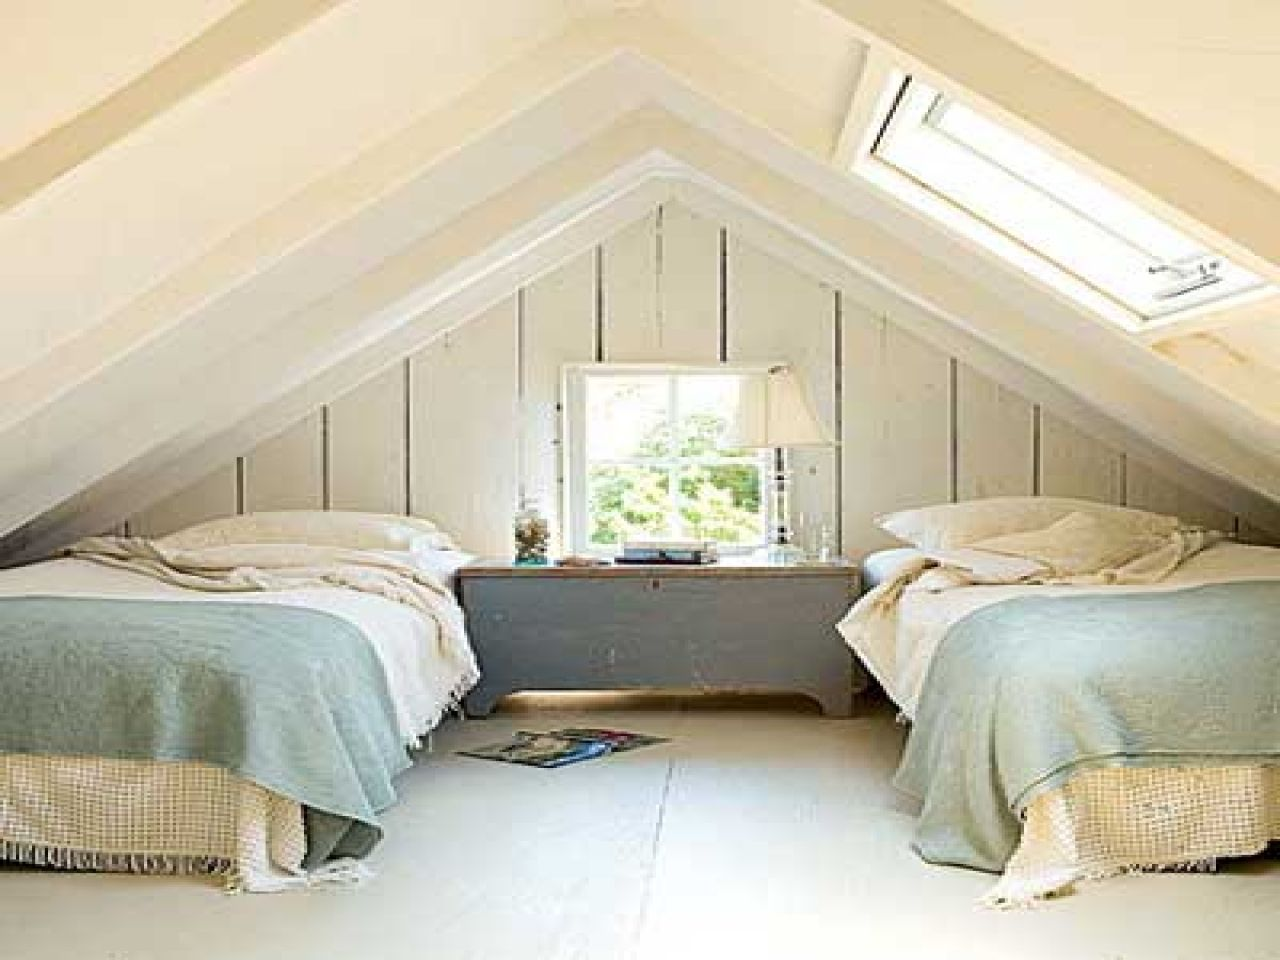 Attic bedroom design and d cor tips attic bedroom small Store room design ideas